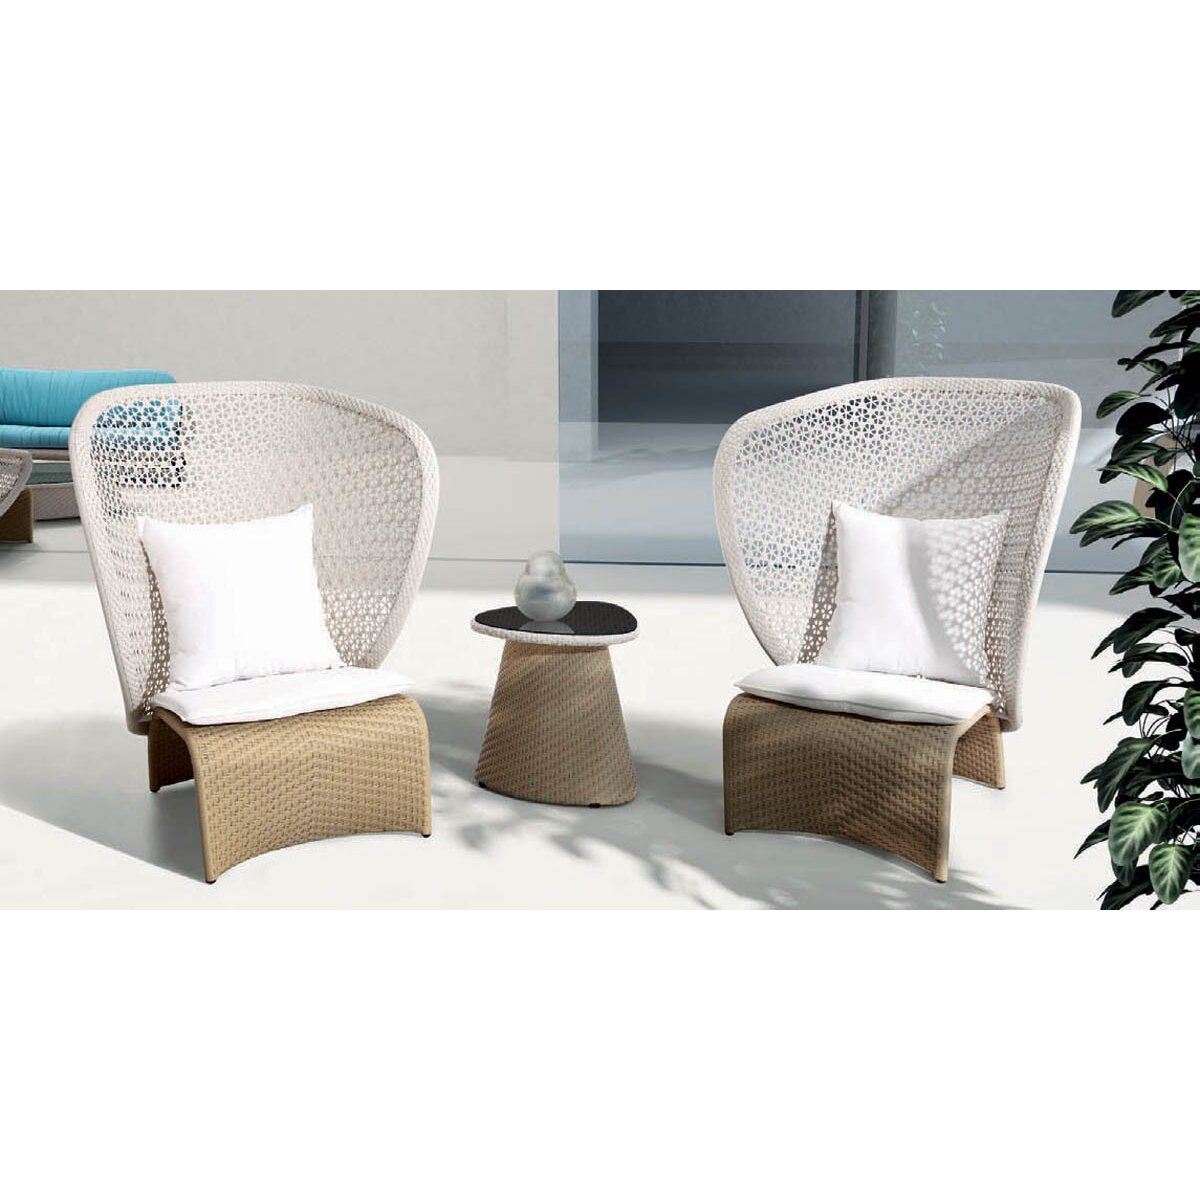 High Back Sofa Chair With Price High Back Sofa Chair With Price Please Click Link To Find More Reference Enjoy In 2020